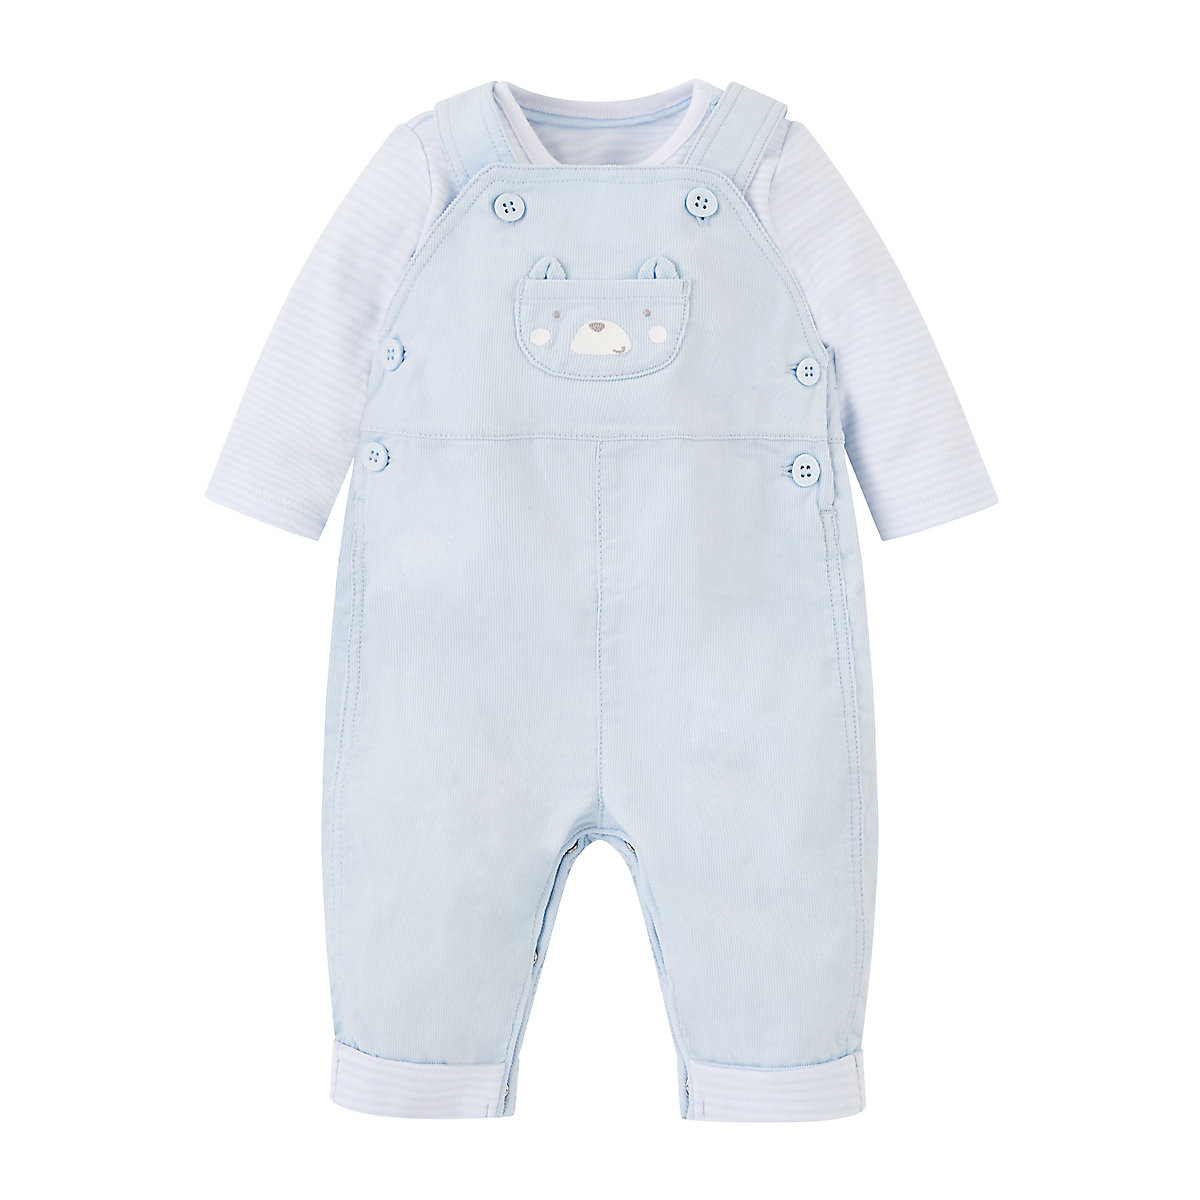 ce8ce8695 Mothercare Cord Dungarees and Bodysuit set - Reviews